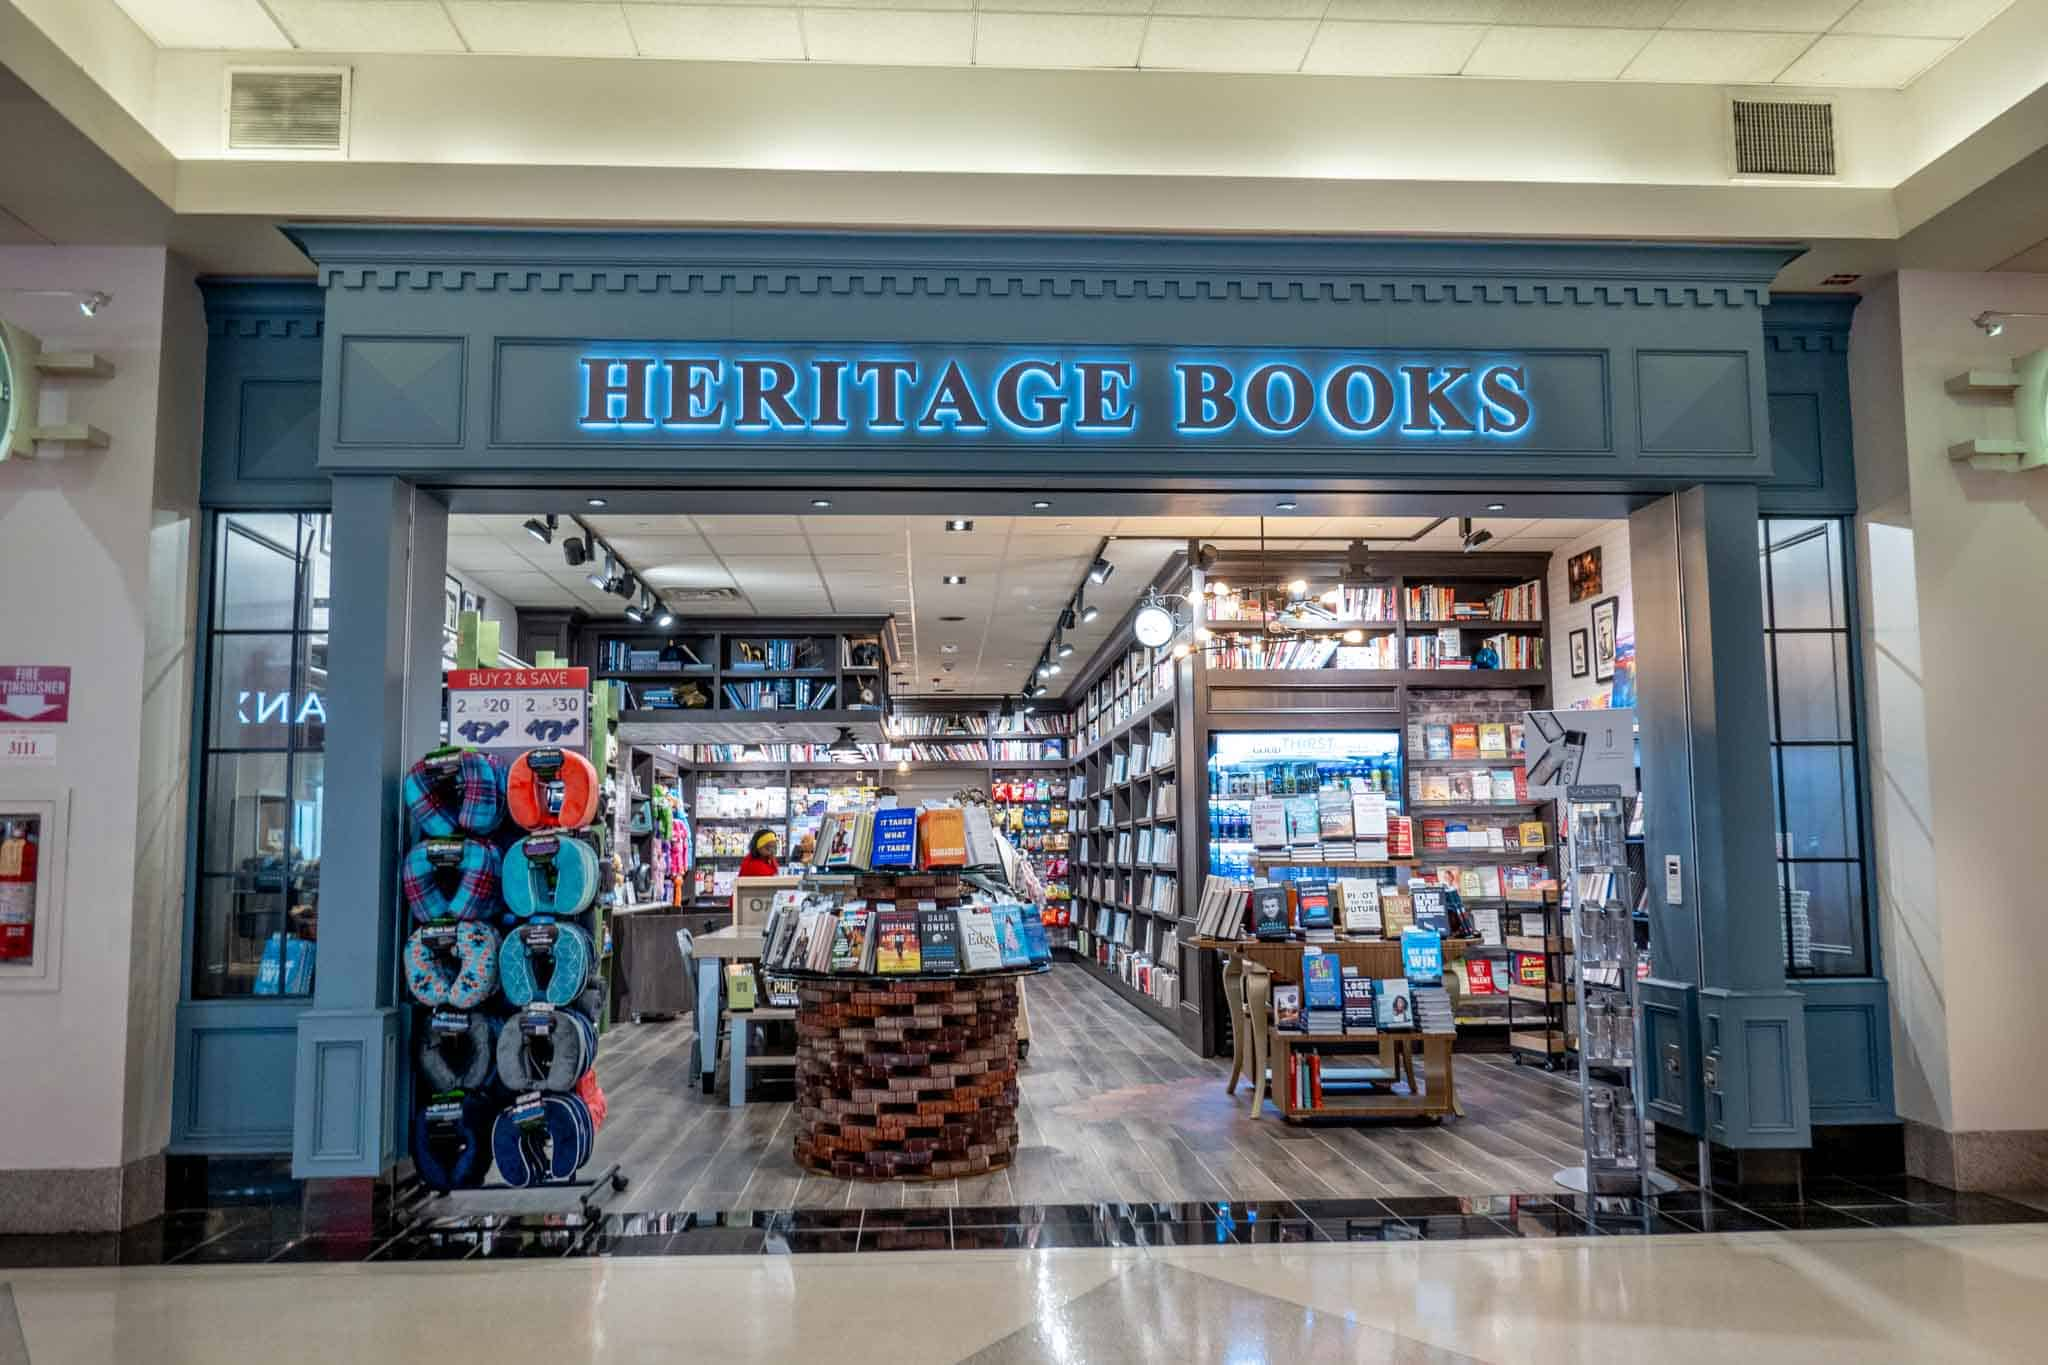 Exterior of Heritage Books store filled with book and magazine displays